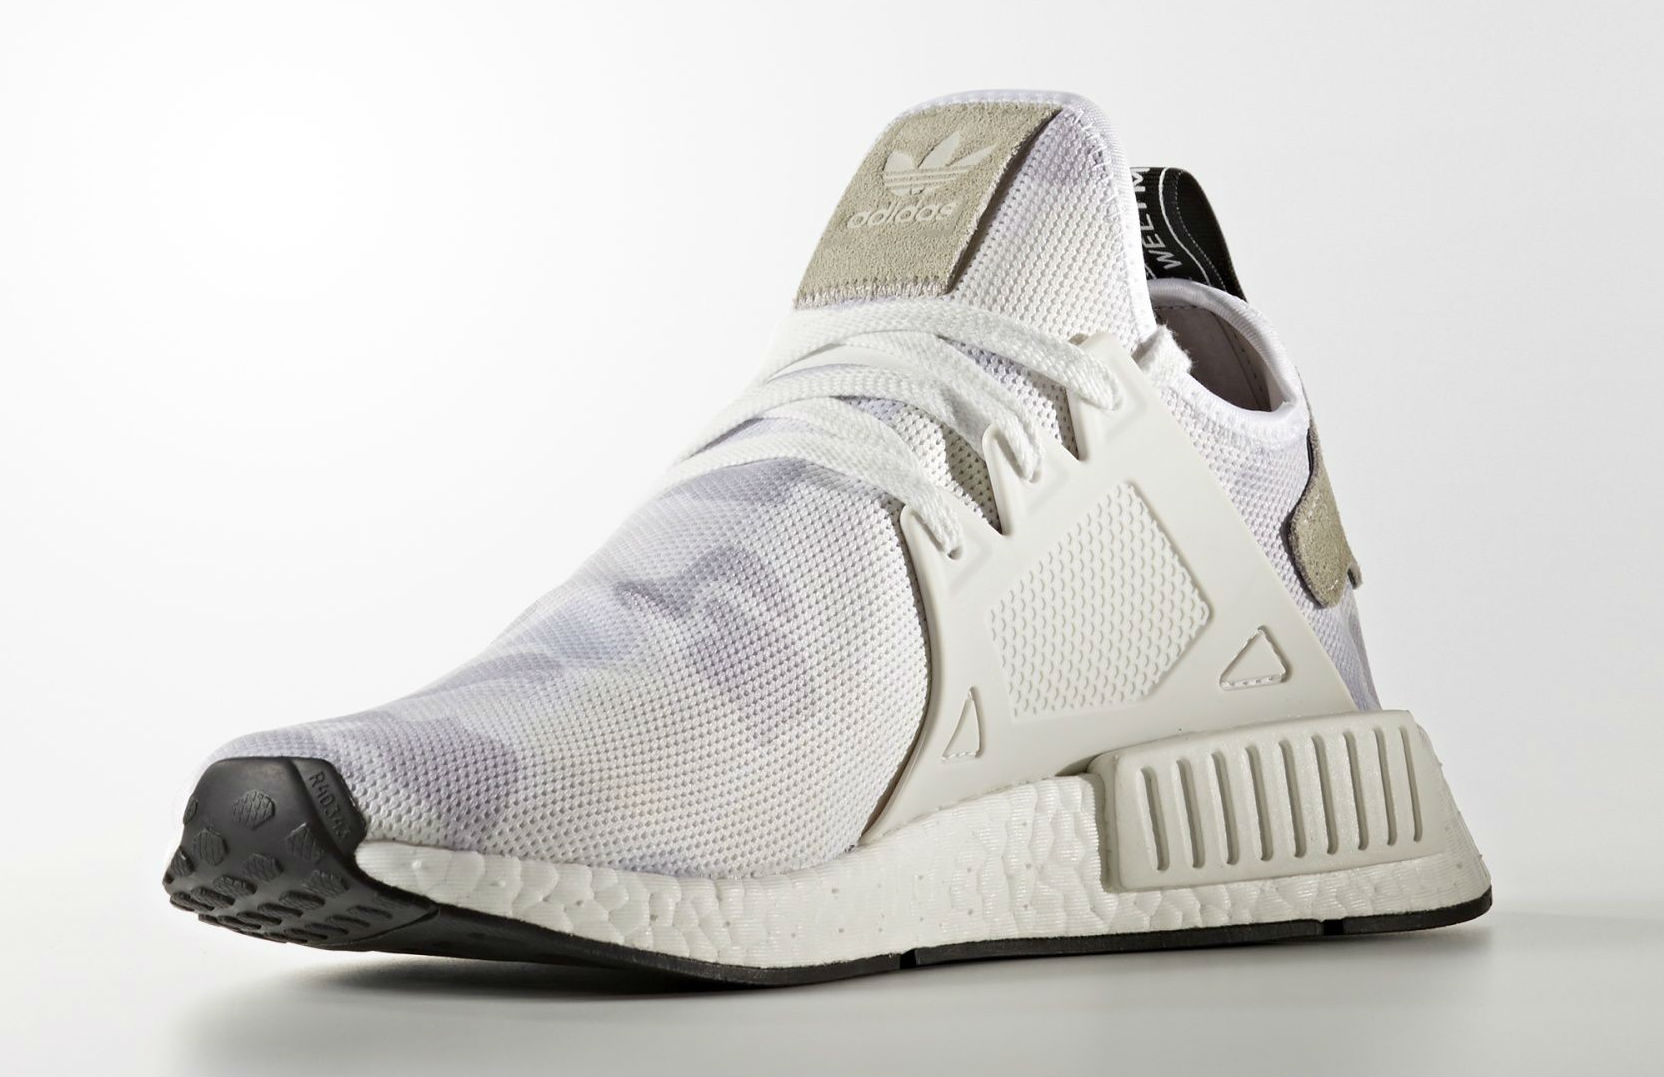 adidas nmd xr1 white core black semi solar red adidas nmd men xr1 triple black